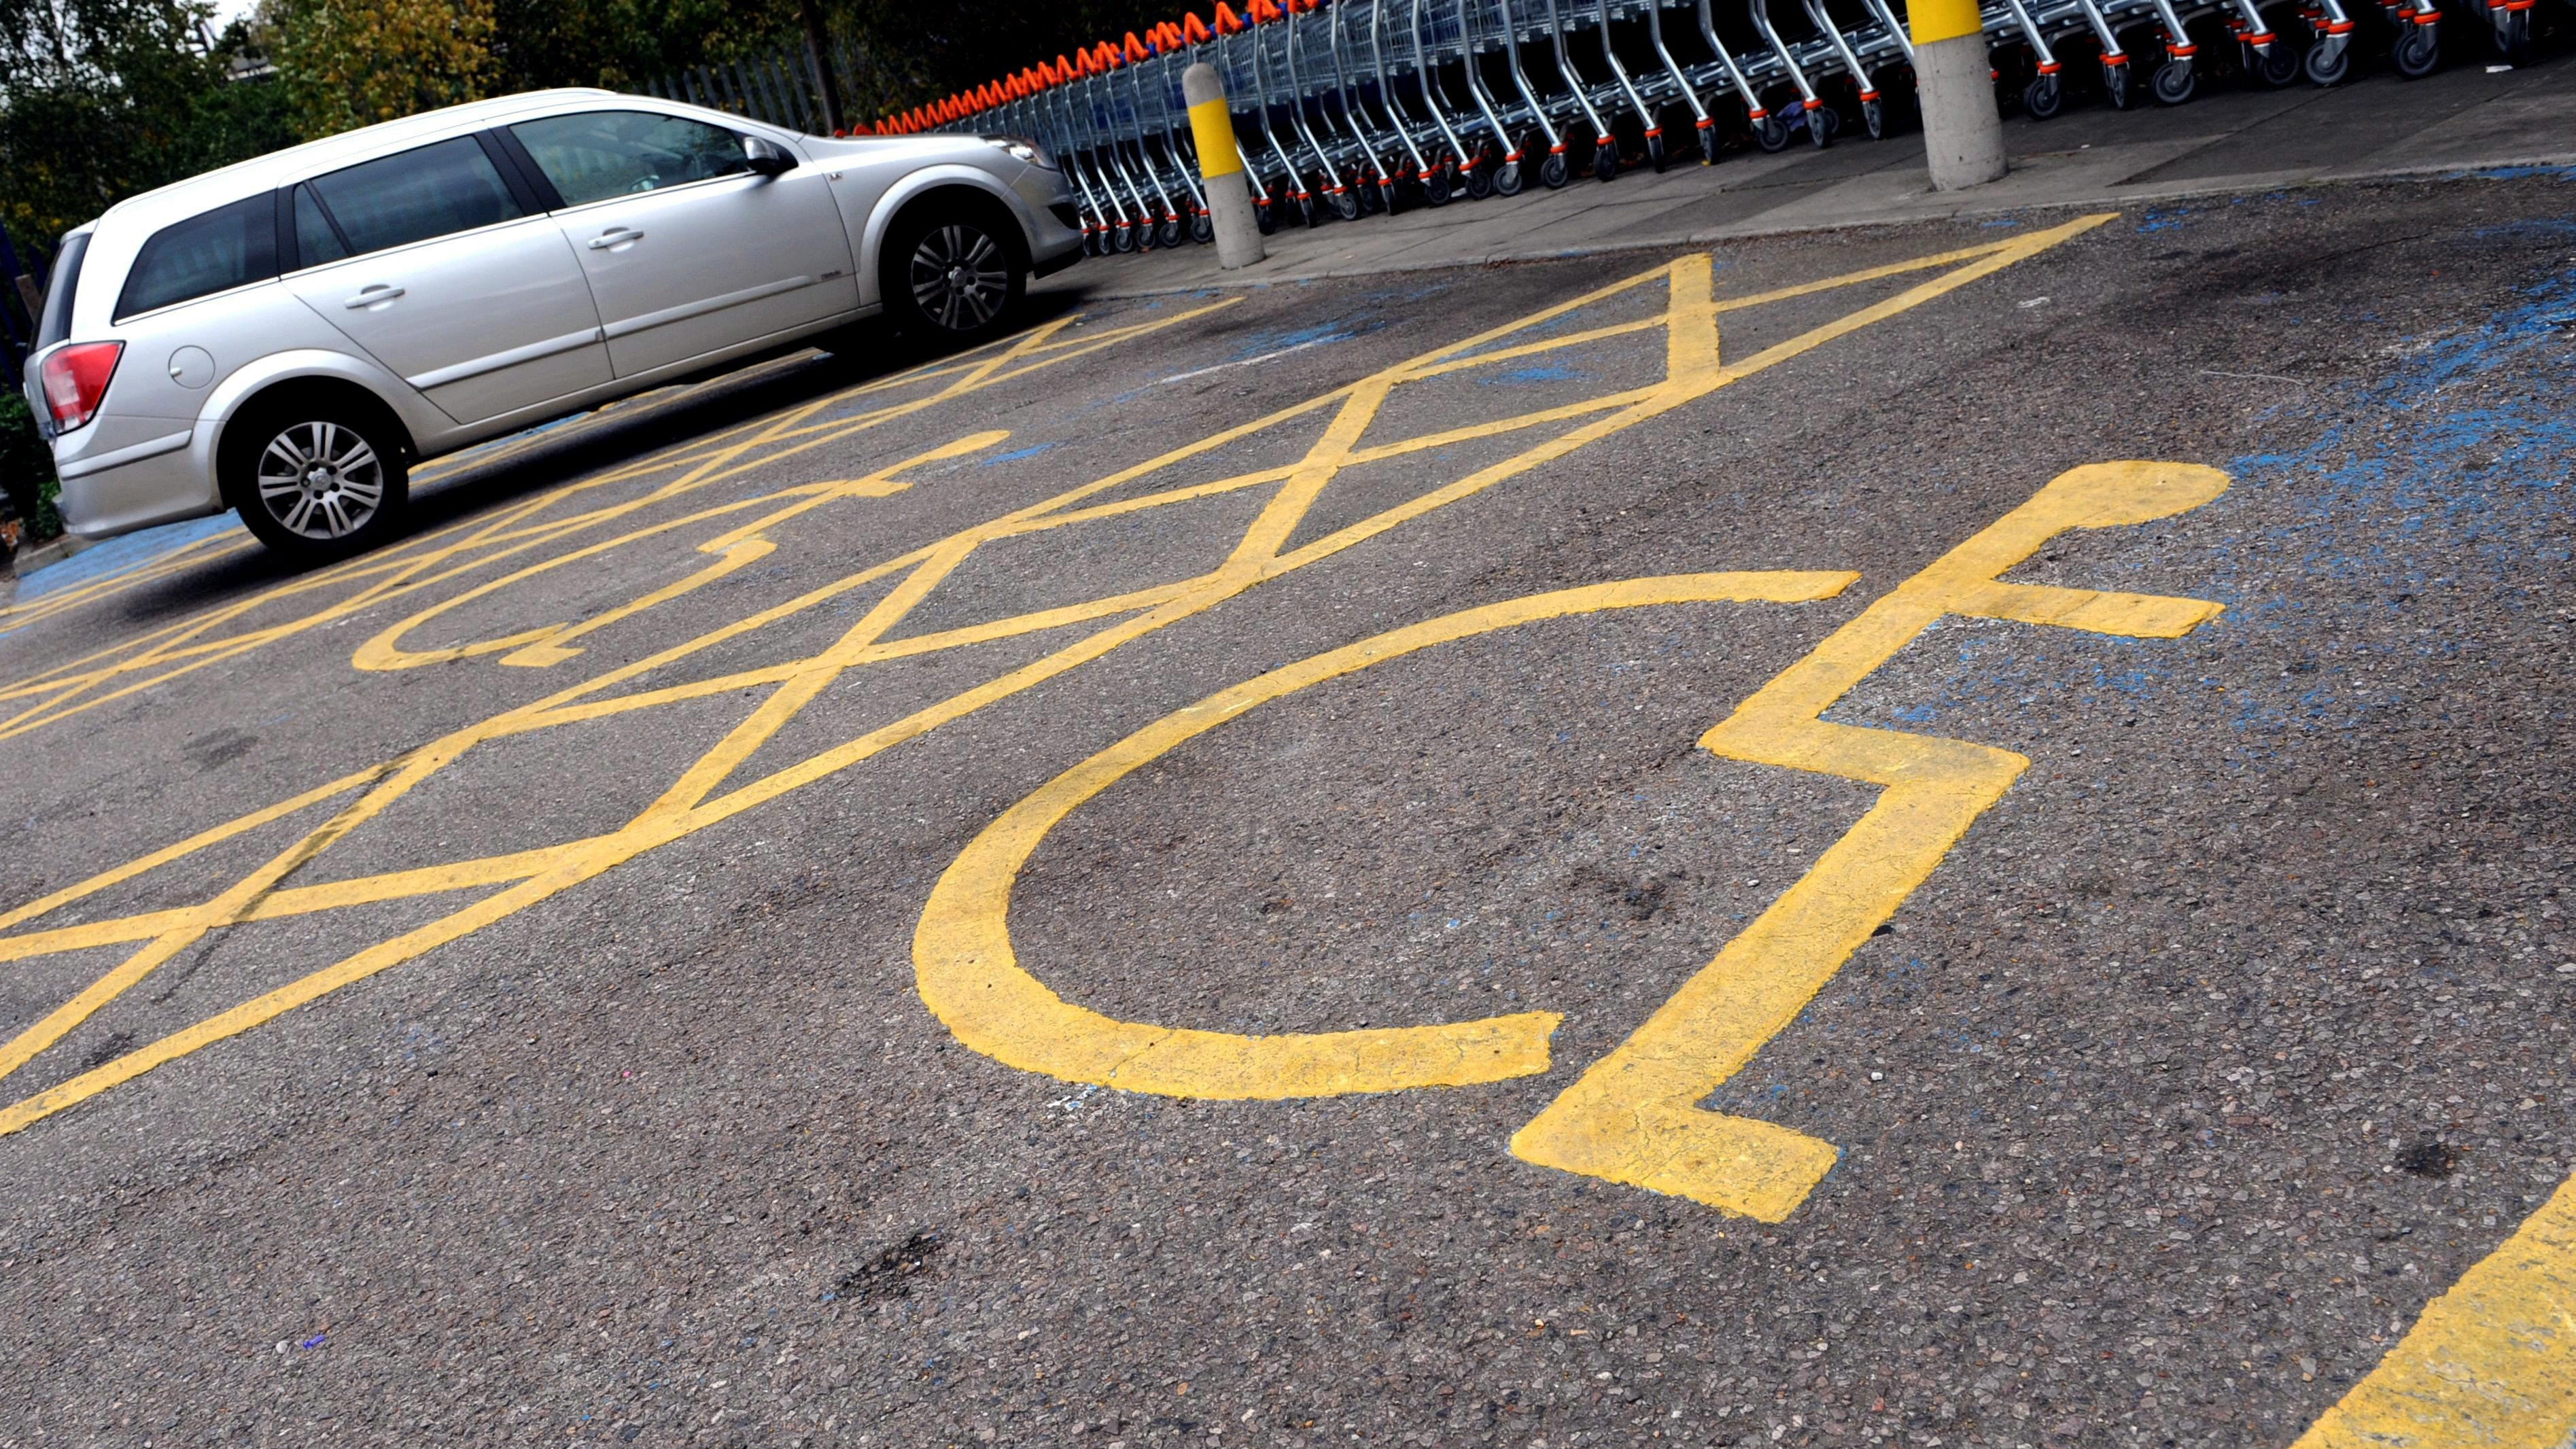 Autism And Ill Health How To Spot >> Blue Badge Parking Permits Extended To Autistic And Mentally Ill